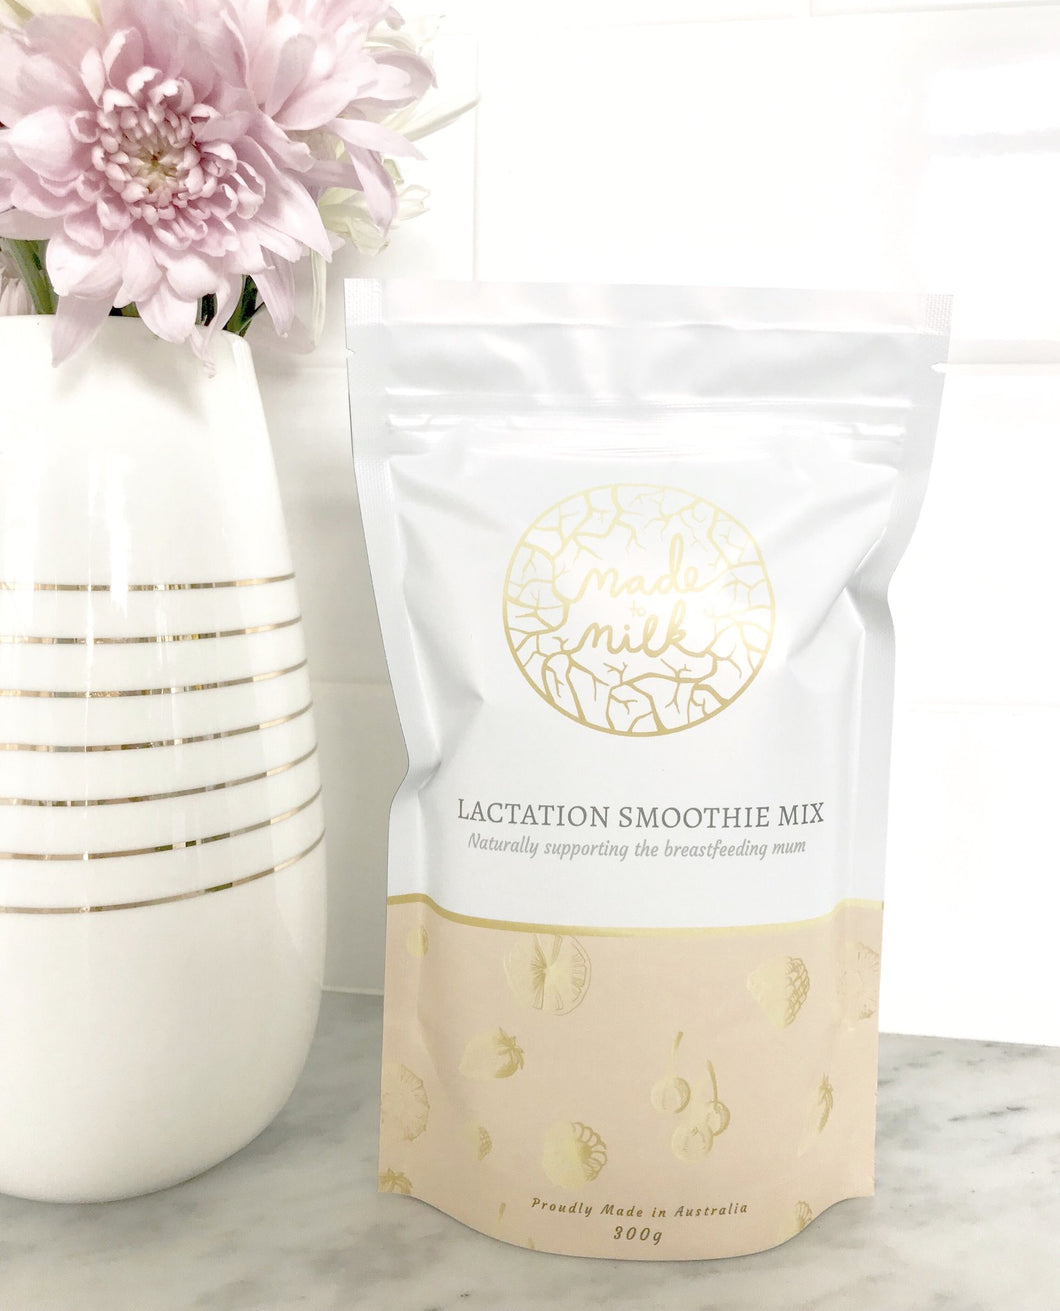 Made to Milk Lactation Smoothie Mix